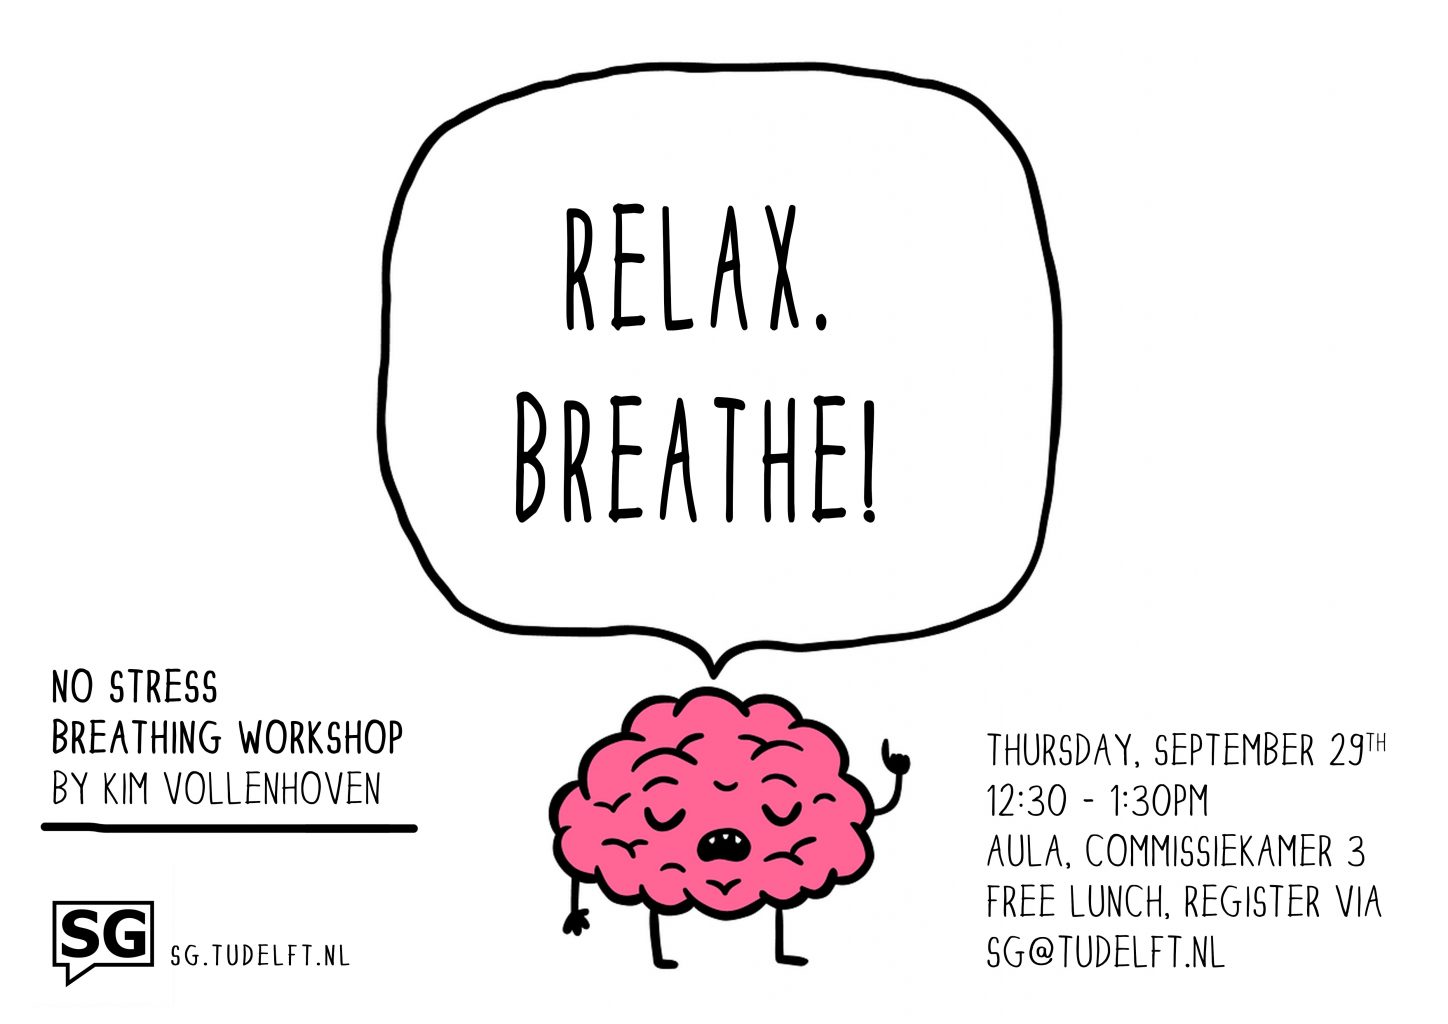 Breathing workshop brain